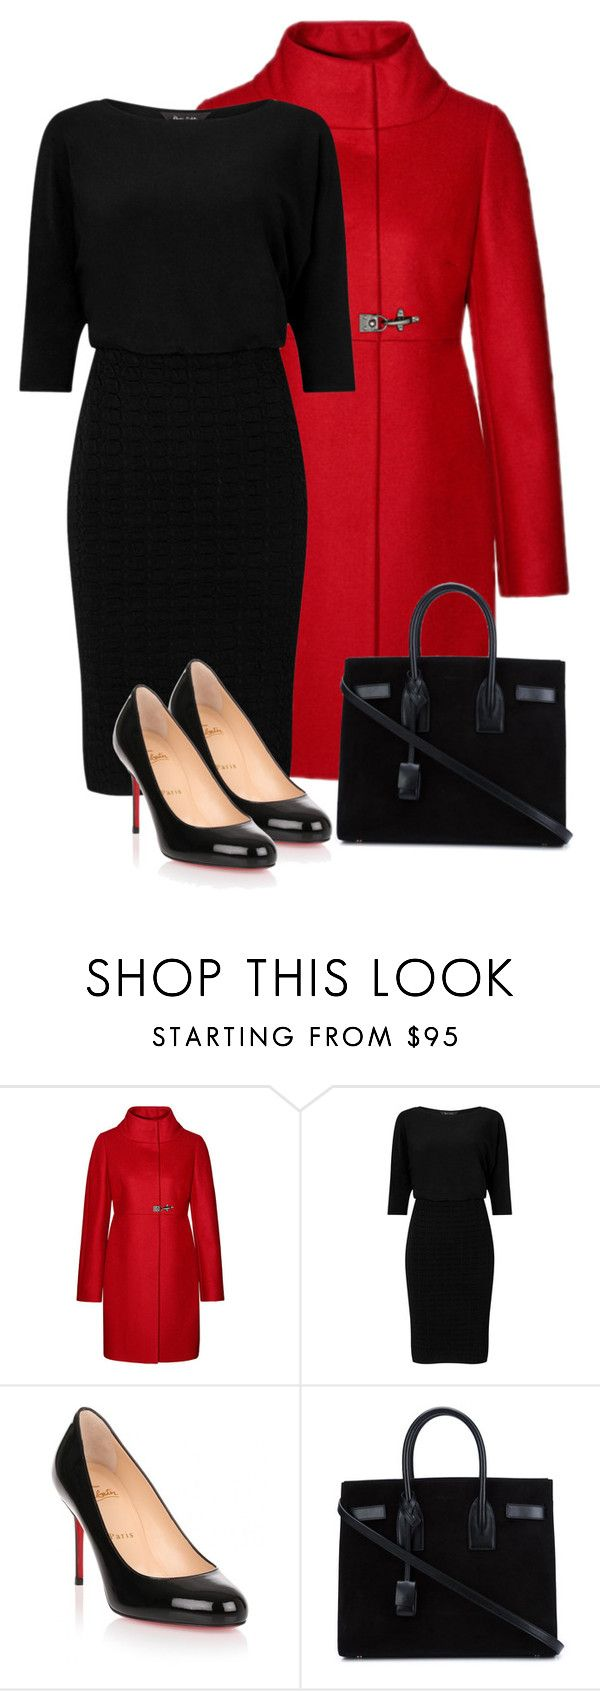 """Untitled 21"" by havlova-blanka on Polyvore featuring FAY, Phase Eight, Christian Louboutin and Yves Saint Laurent"